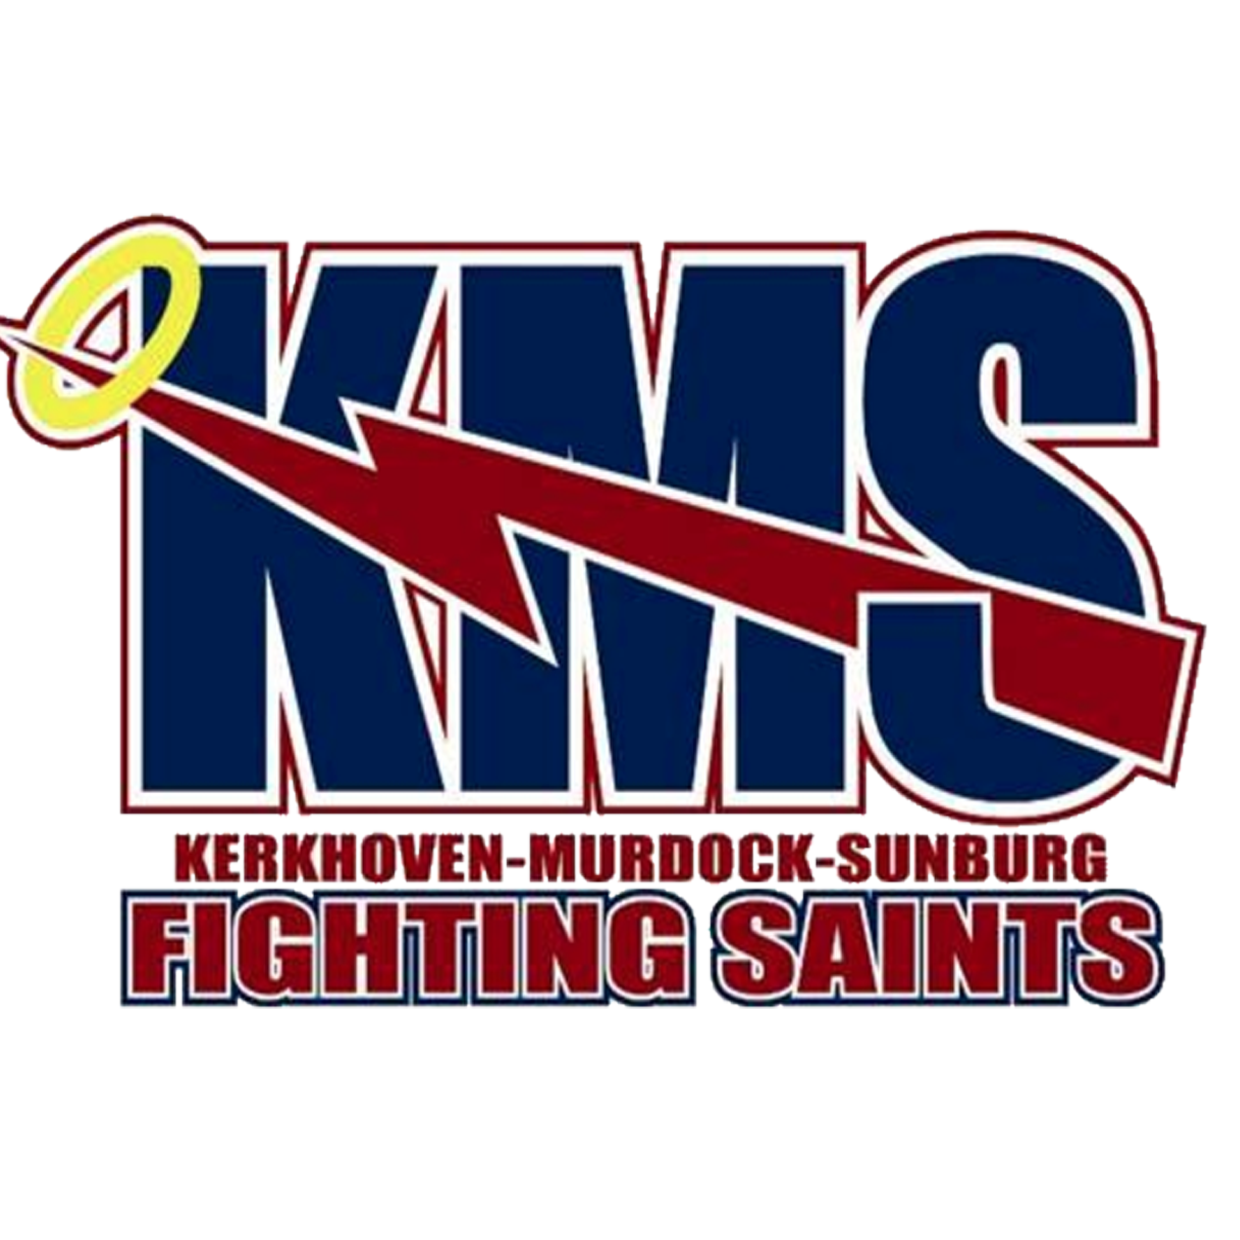 Kerkhoven-Murdock-Sunburg Fighting Saints